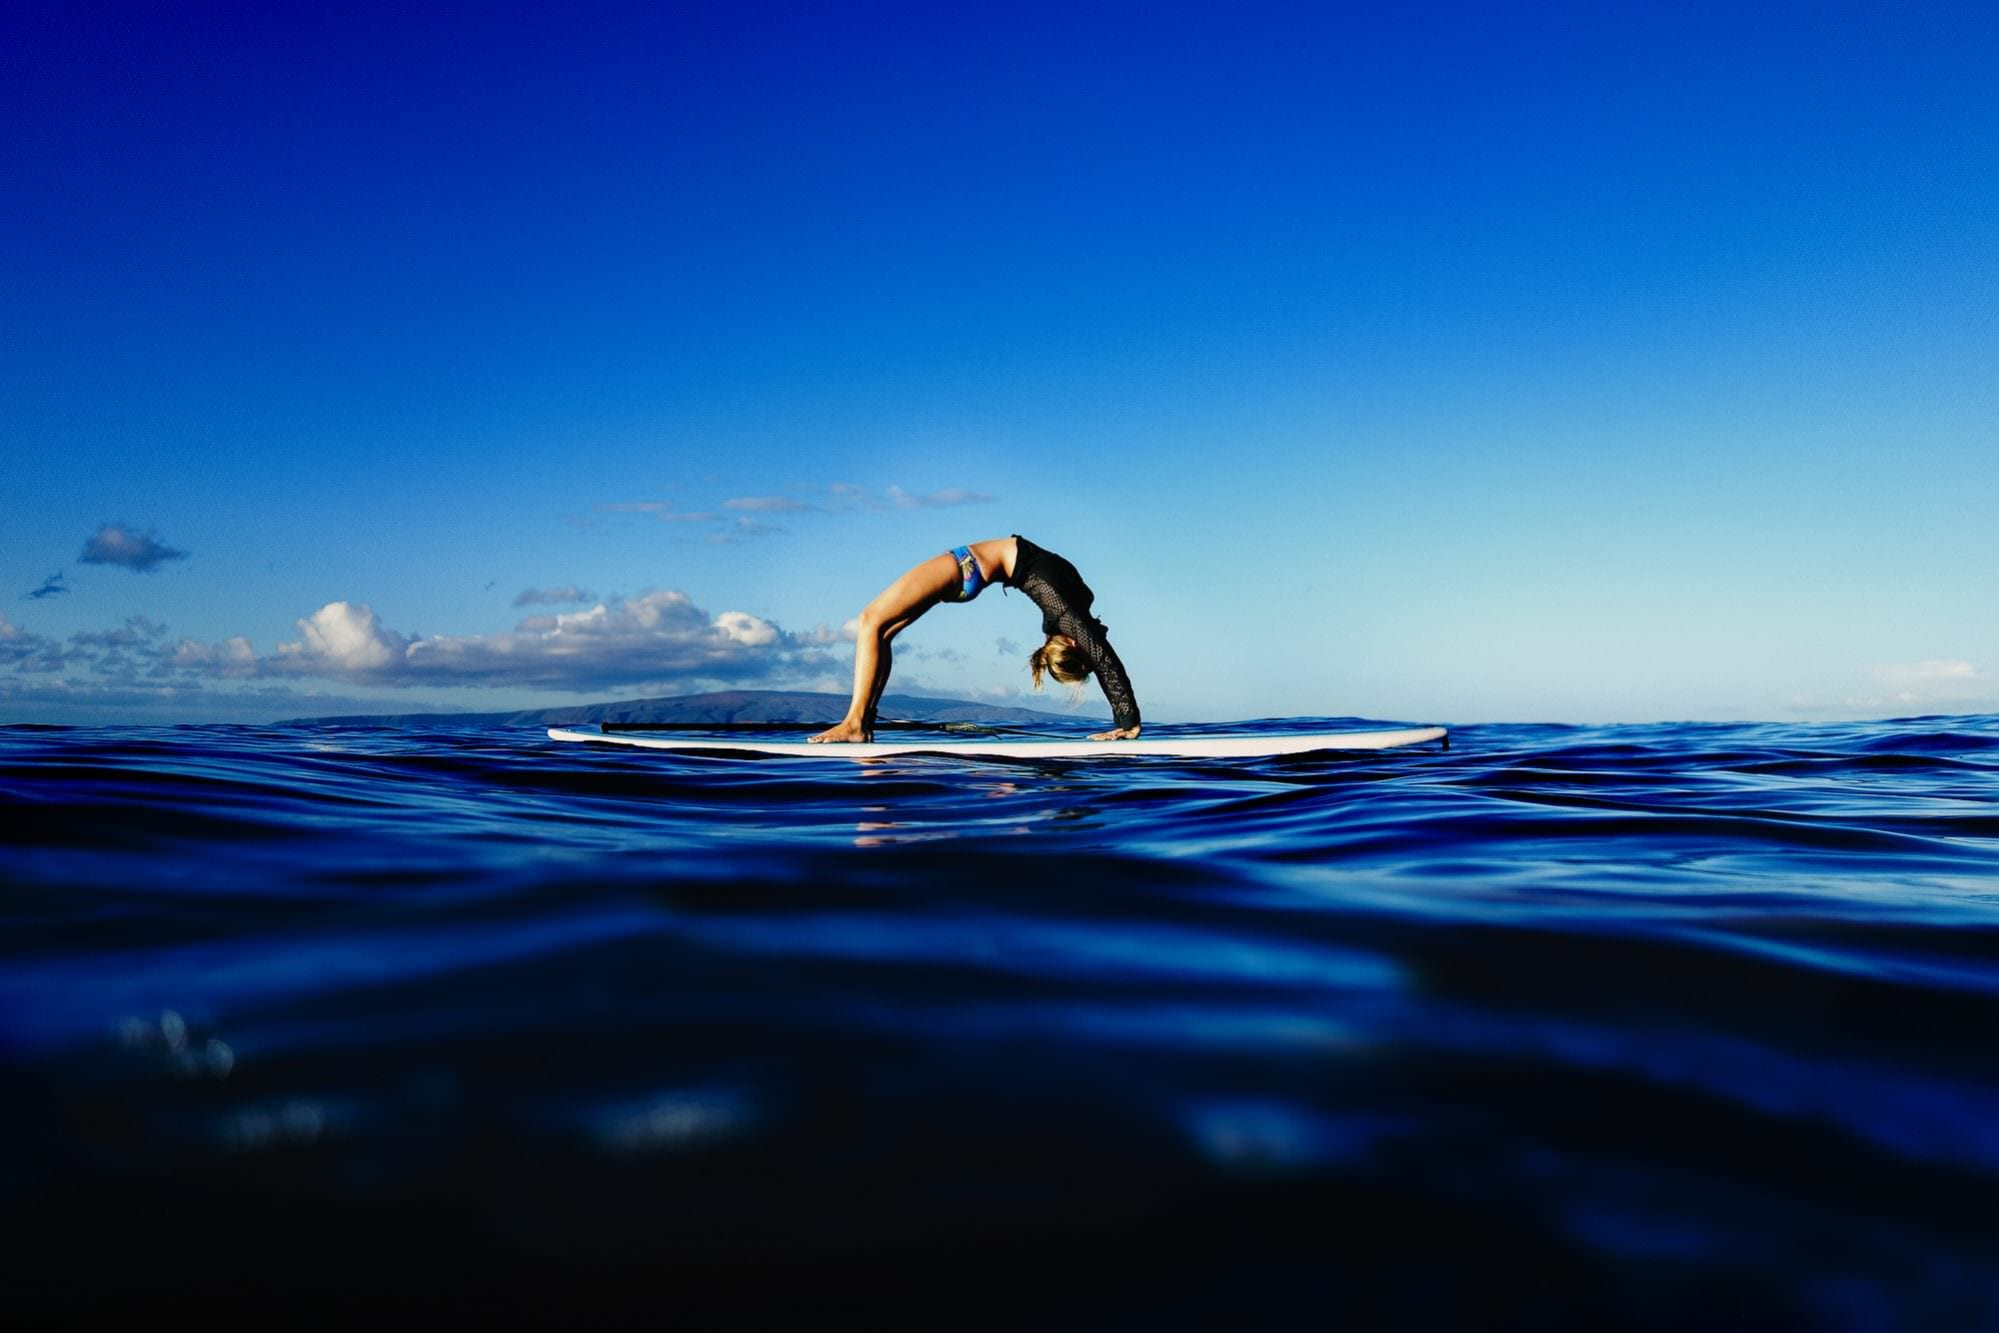 Four Seasons Resort Maui, Wailea, Hawaii. Stand Up Paddle Board Yoga